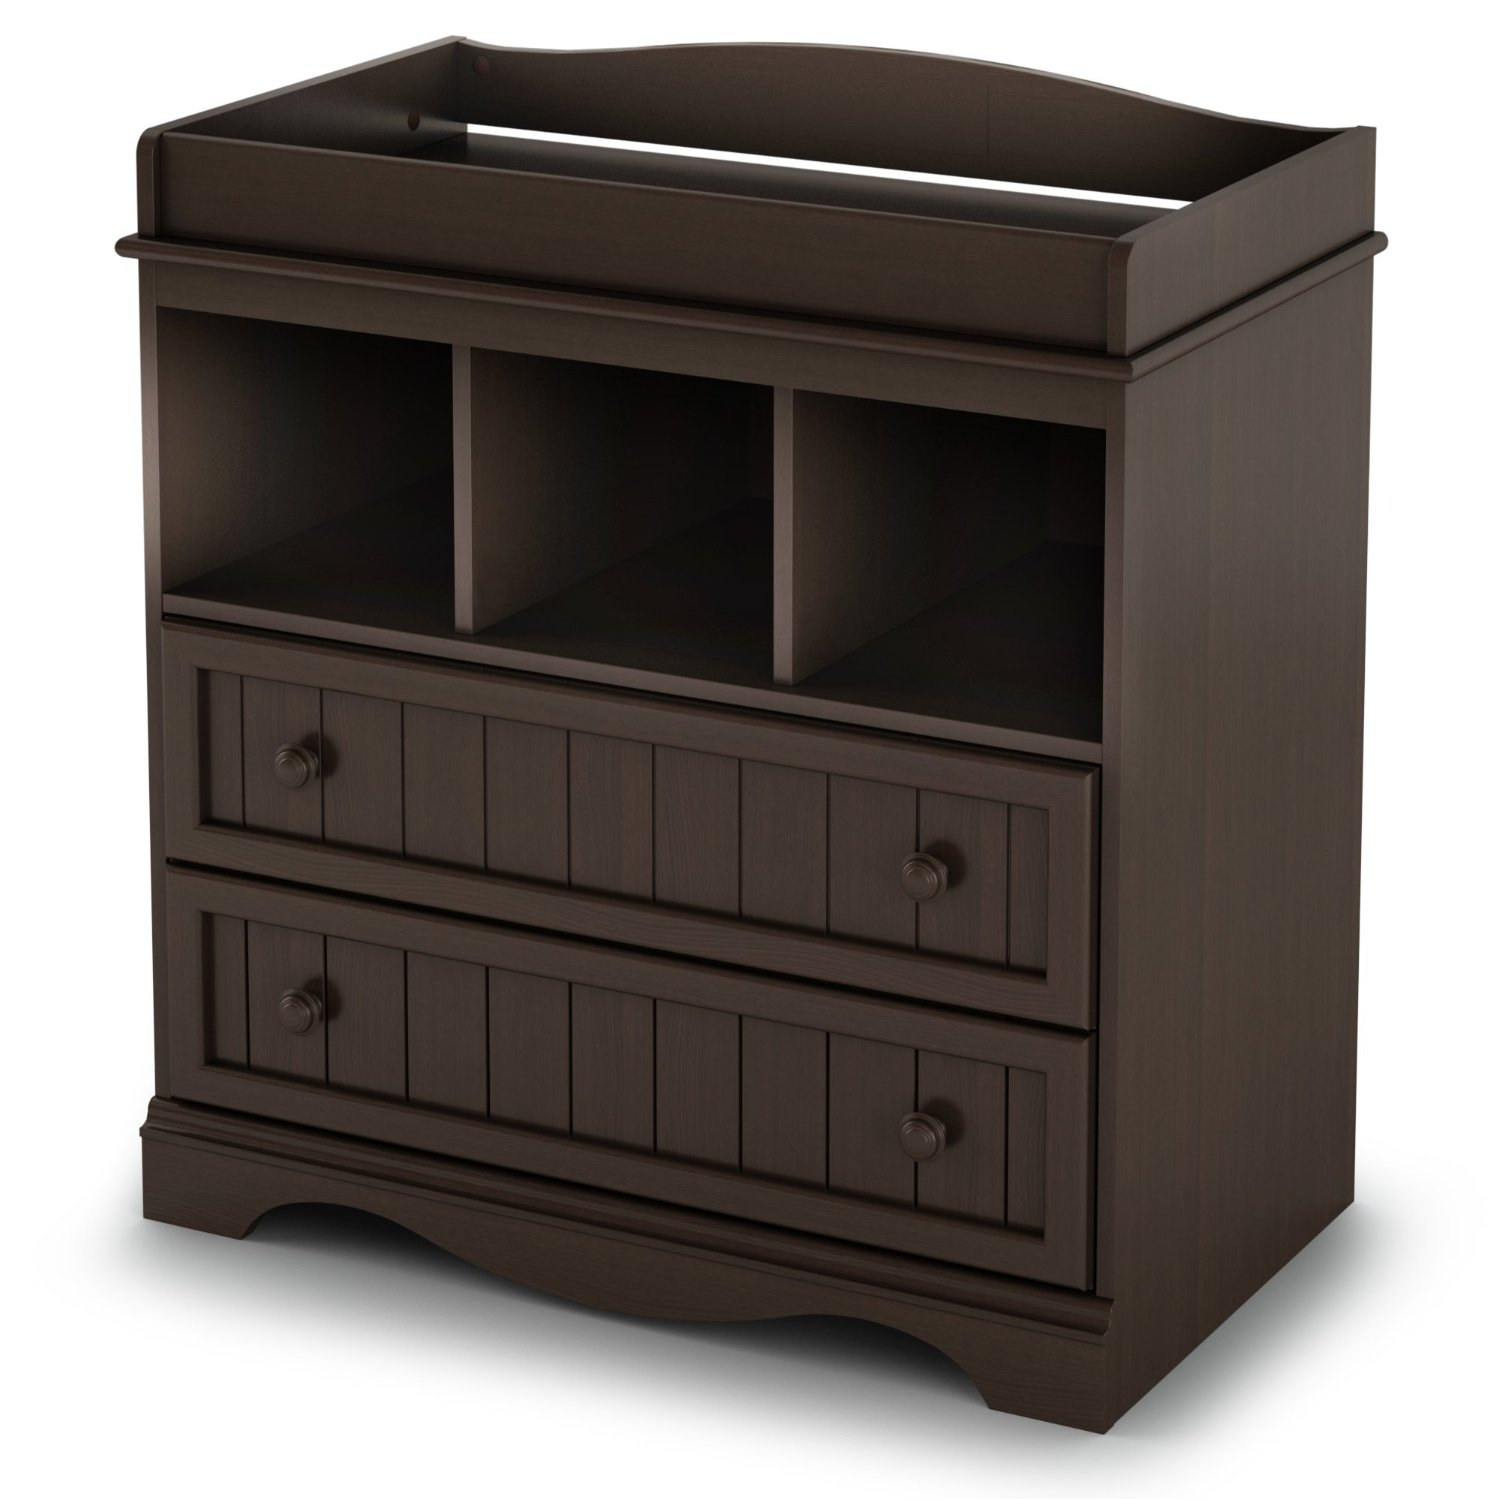 South Shore Savannah Collection Changing Table, Espresso